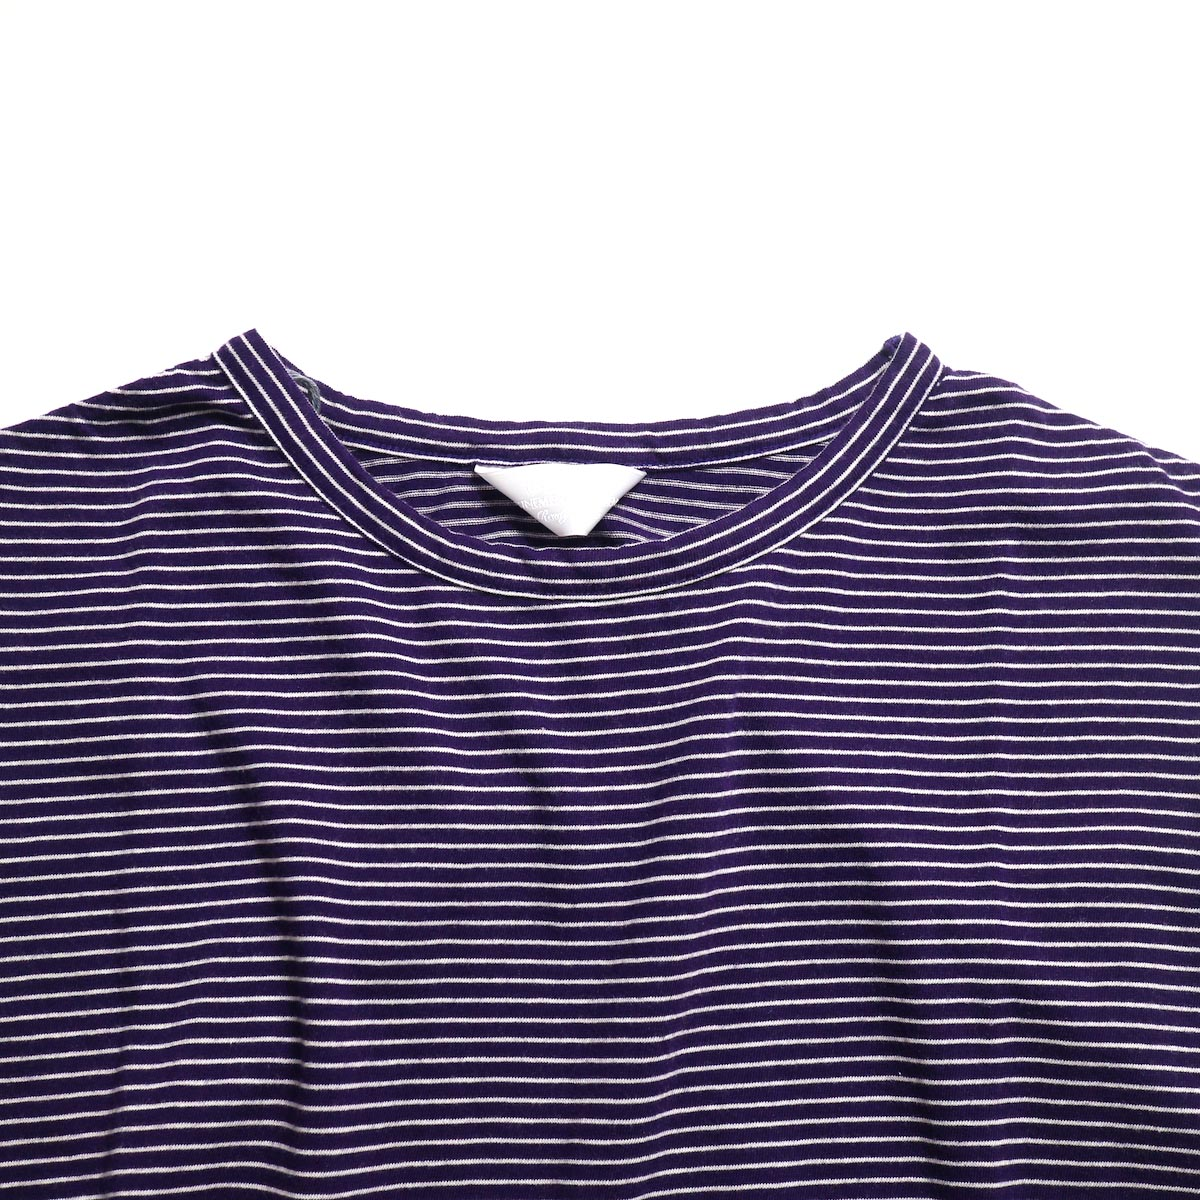 UNUSED / US1568 Border No Sleeve Tee (Purple×White)襟